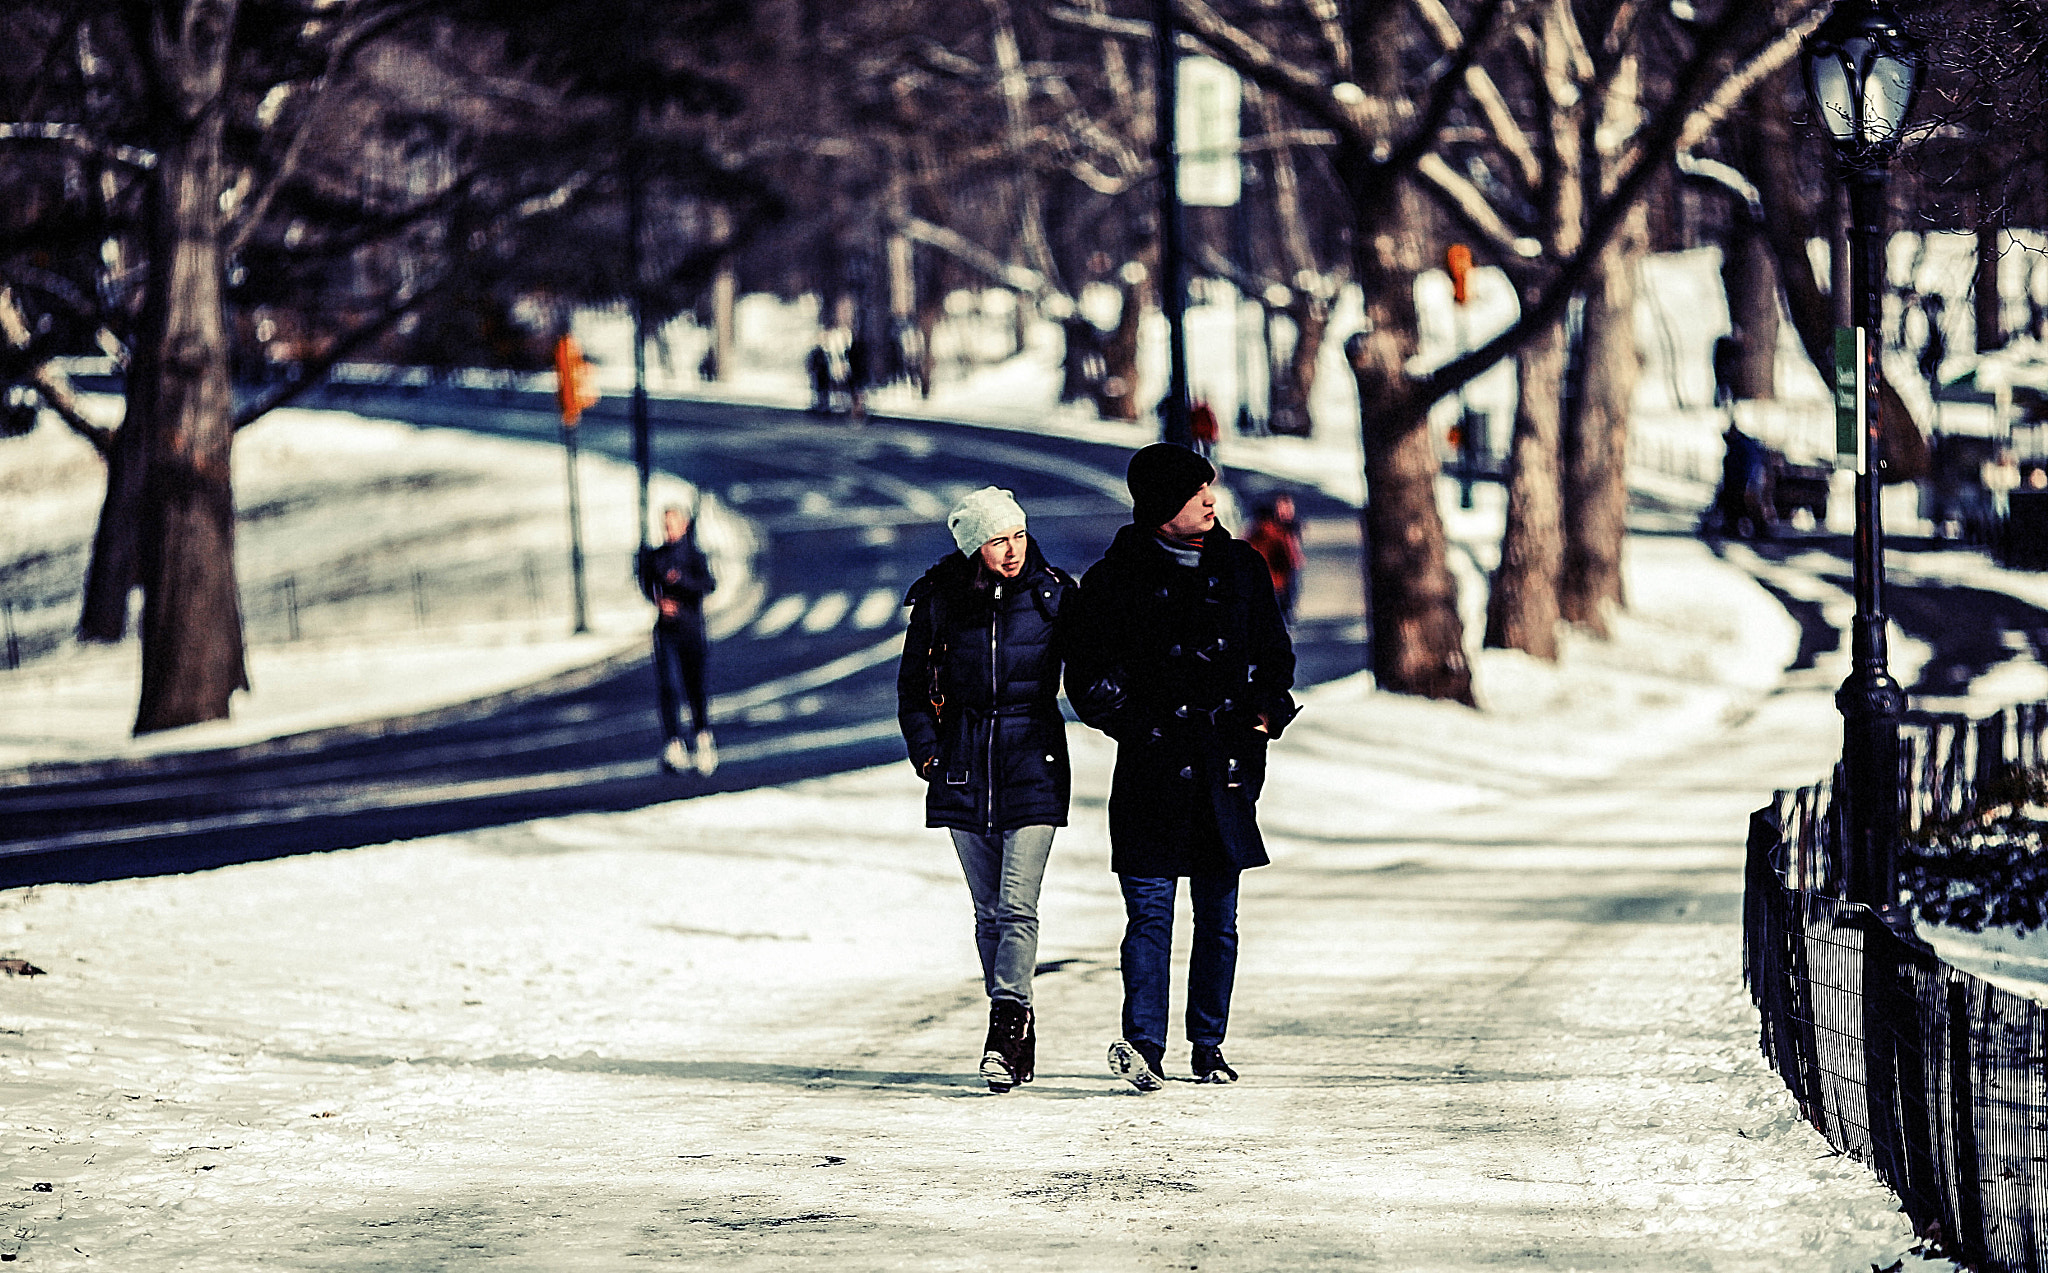 Photograph { Love - Walking - Central Park - Snowy Day }  by Anh Gerrard  on 500px